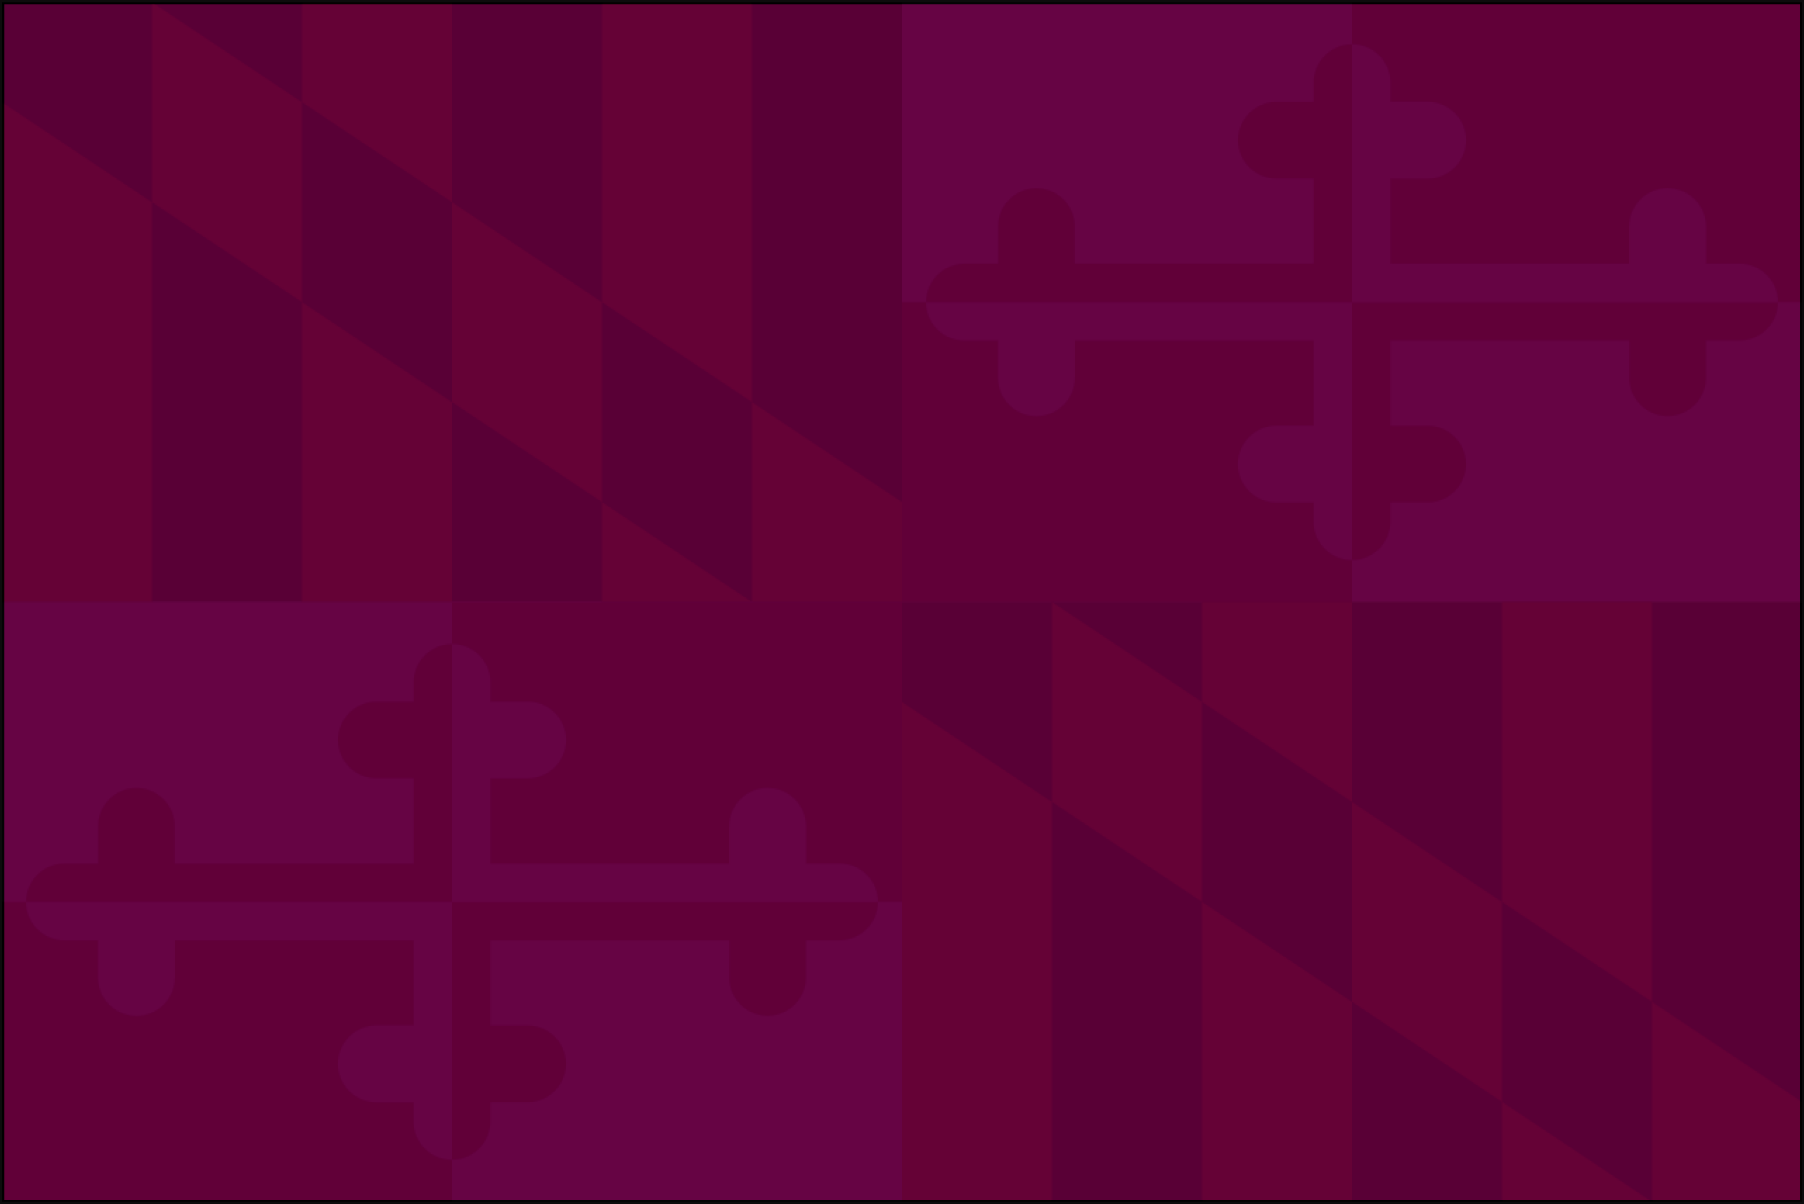 Purple md flag